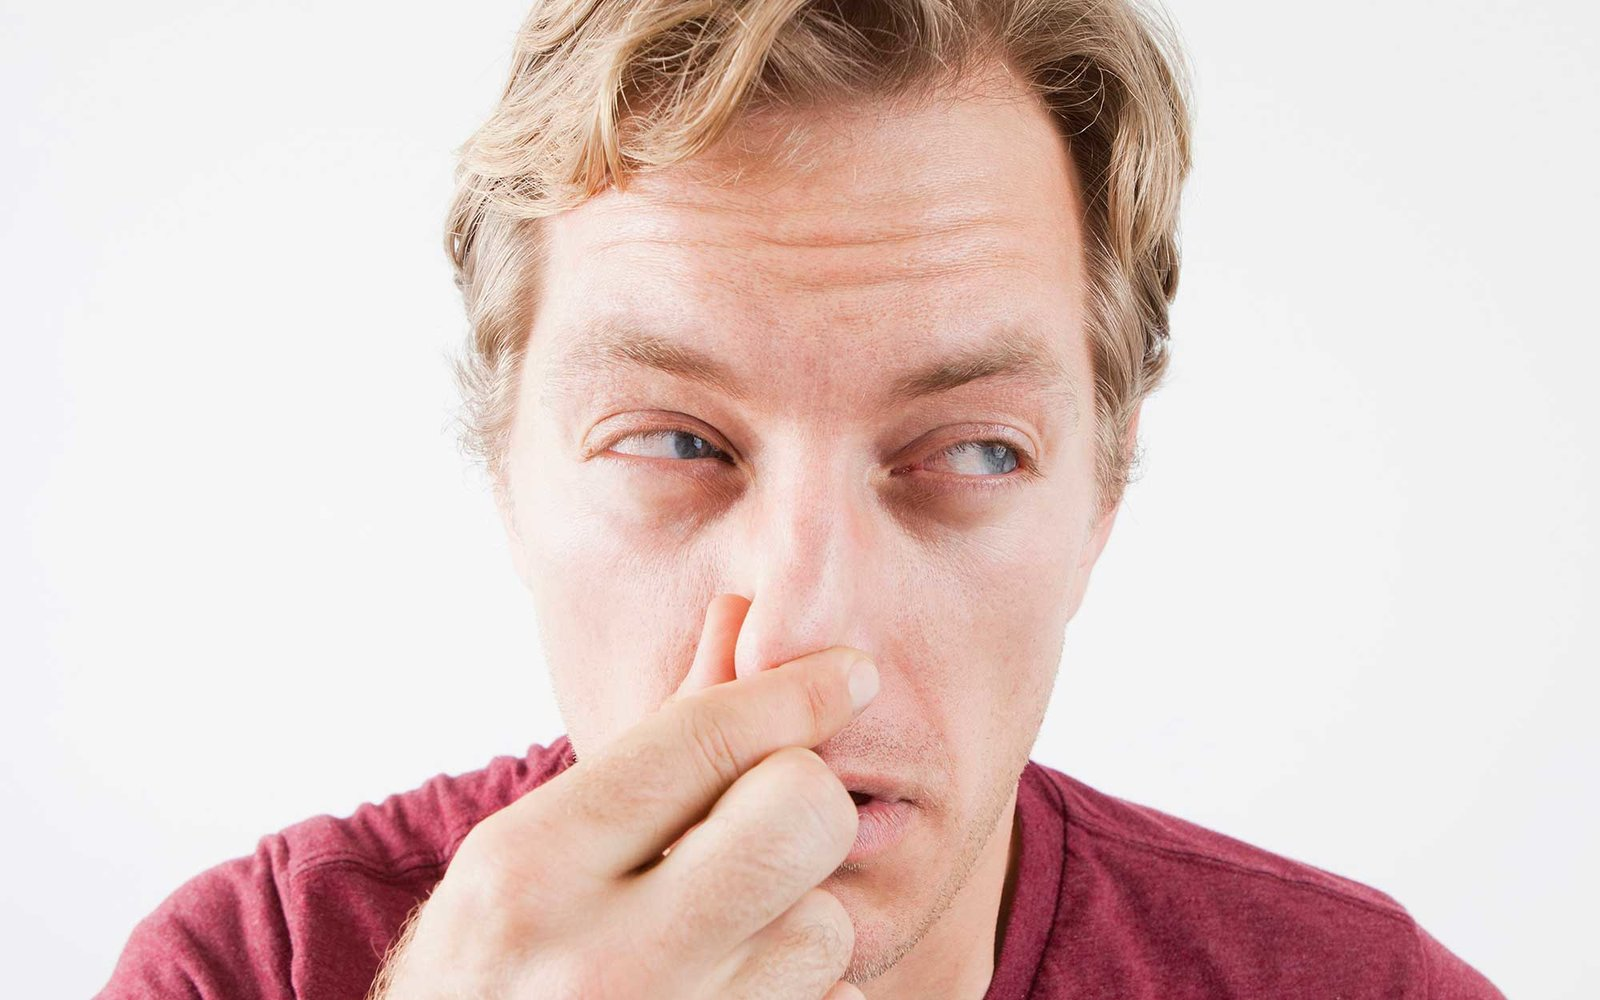 Studio Shot of mid adult man covering nose against unpleasant smell